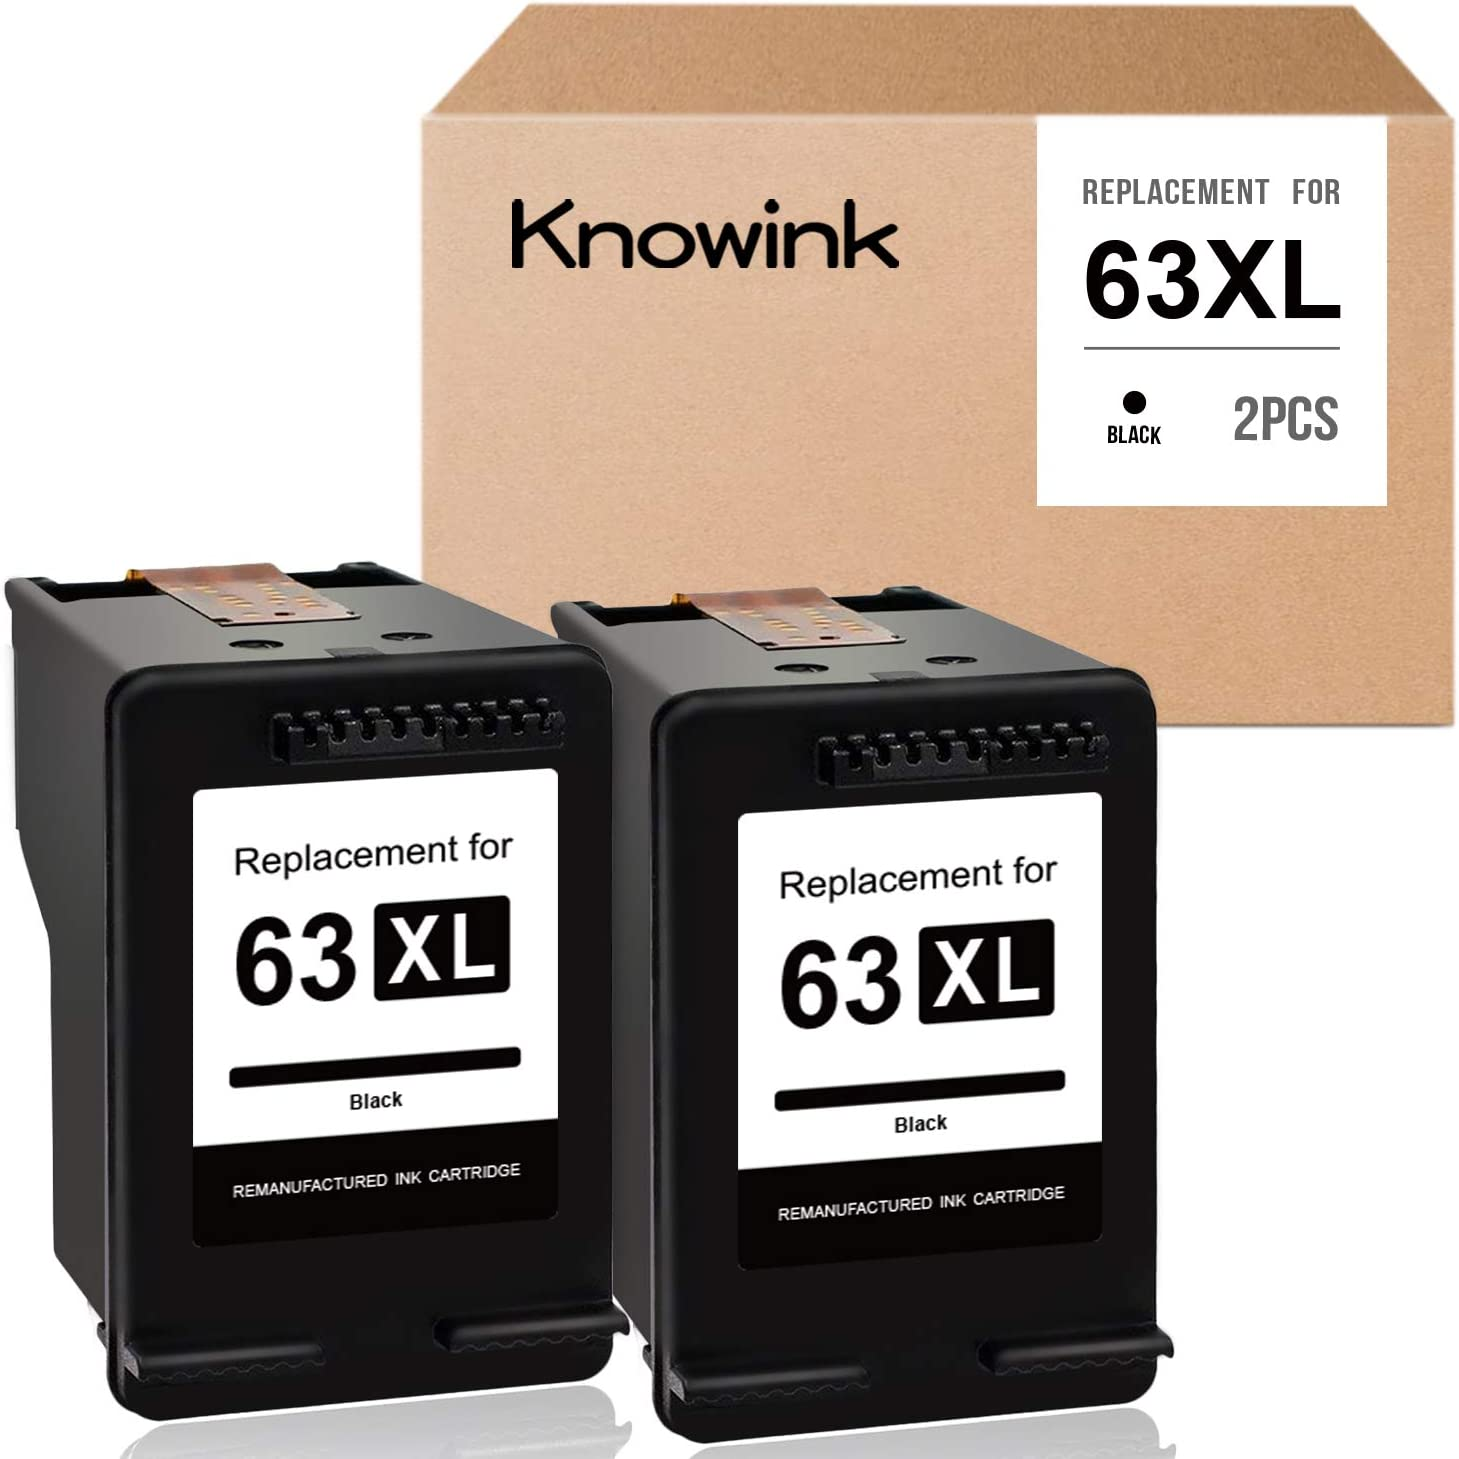 KNOWINK Remanufactured Ink Cartridge Replacement for HP 63 XL 63XL Black High Yield Use with OfficeJet 3830 3630 3631 3632 4650 4652 4655 5252 5255 5258 DeskJet 1112 2130 2132 Envy 4520 4512 (2Black)